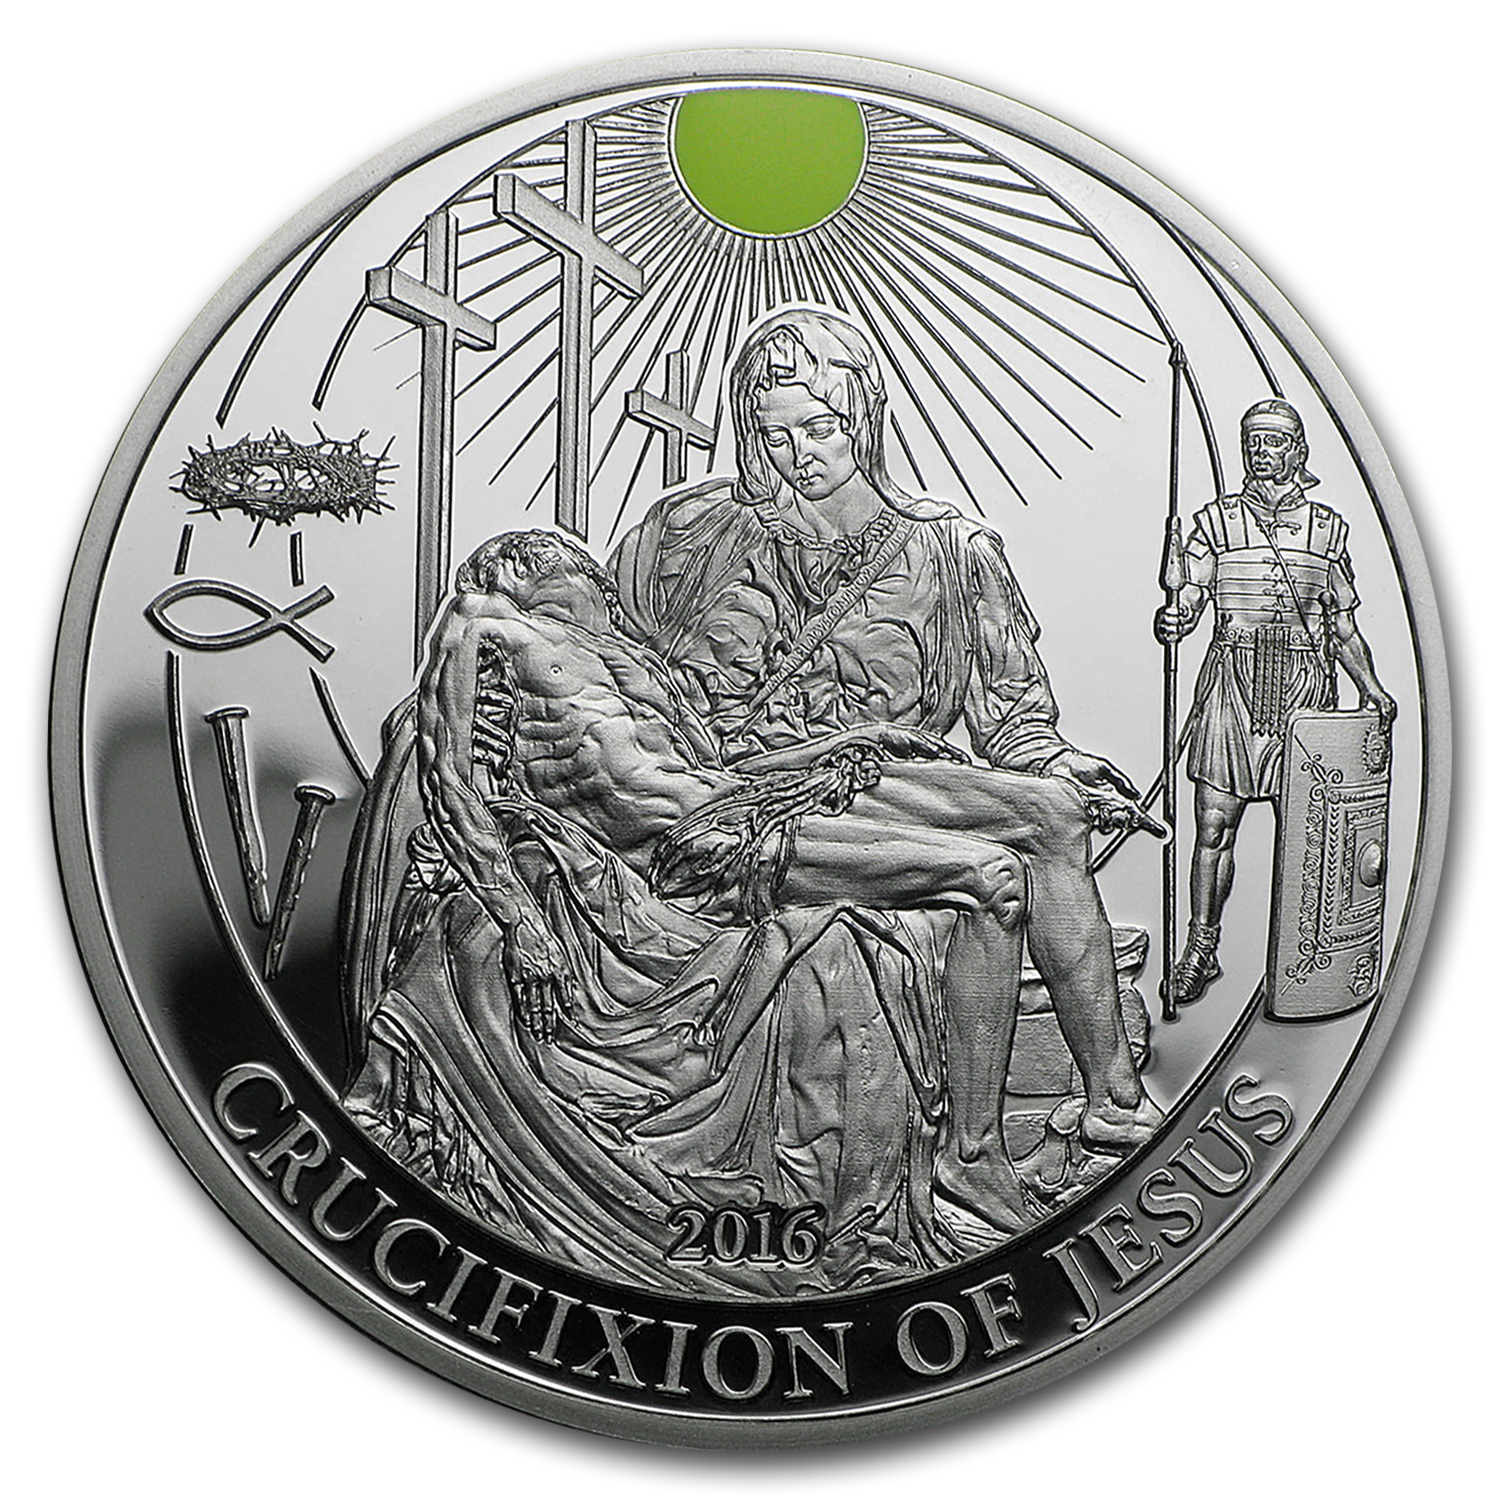 2016 Palau Proof Silver Biblical Stories (Crucifixion of Jesus)